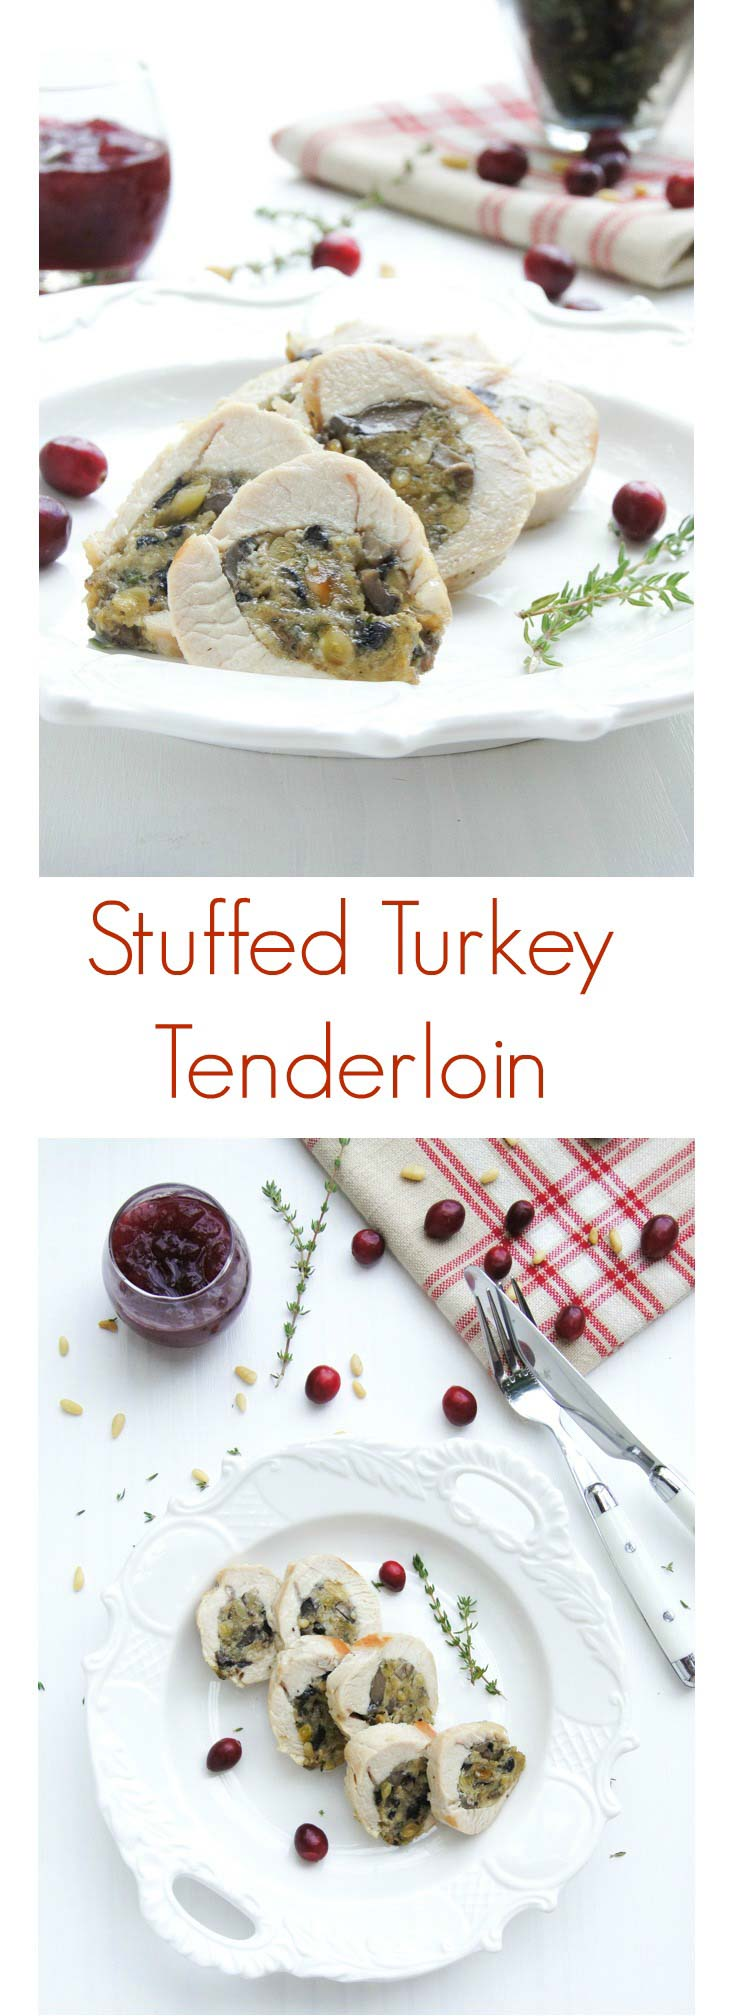 Thanksgiving Mushroom and Pine Nuts Stuffed Turkey Tenderloin is a wonderfully flavourful celebration dish - easy to prepare in 15min recipe.